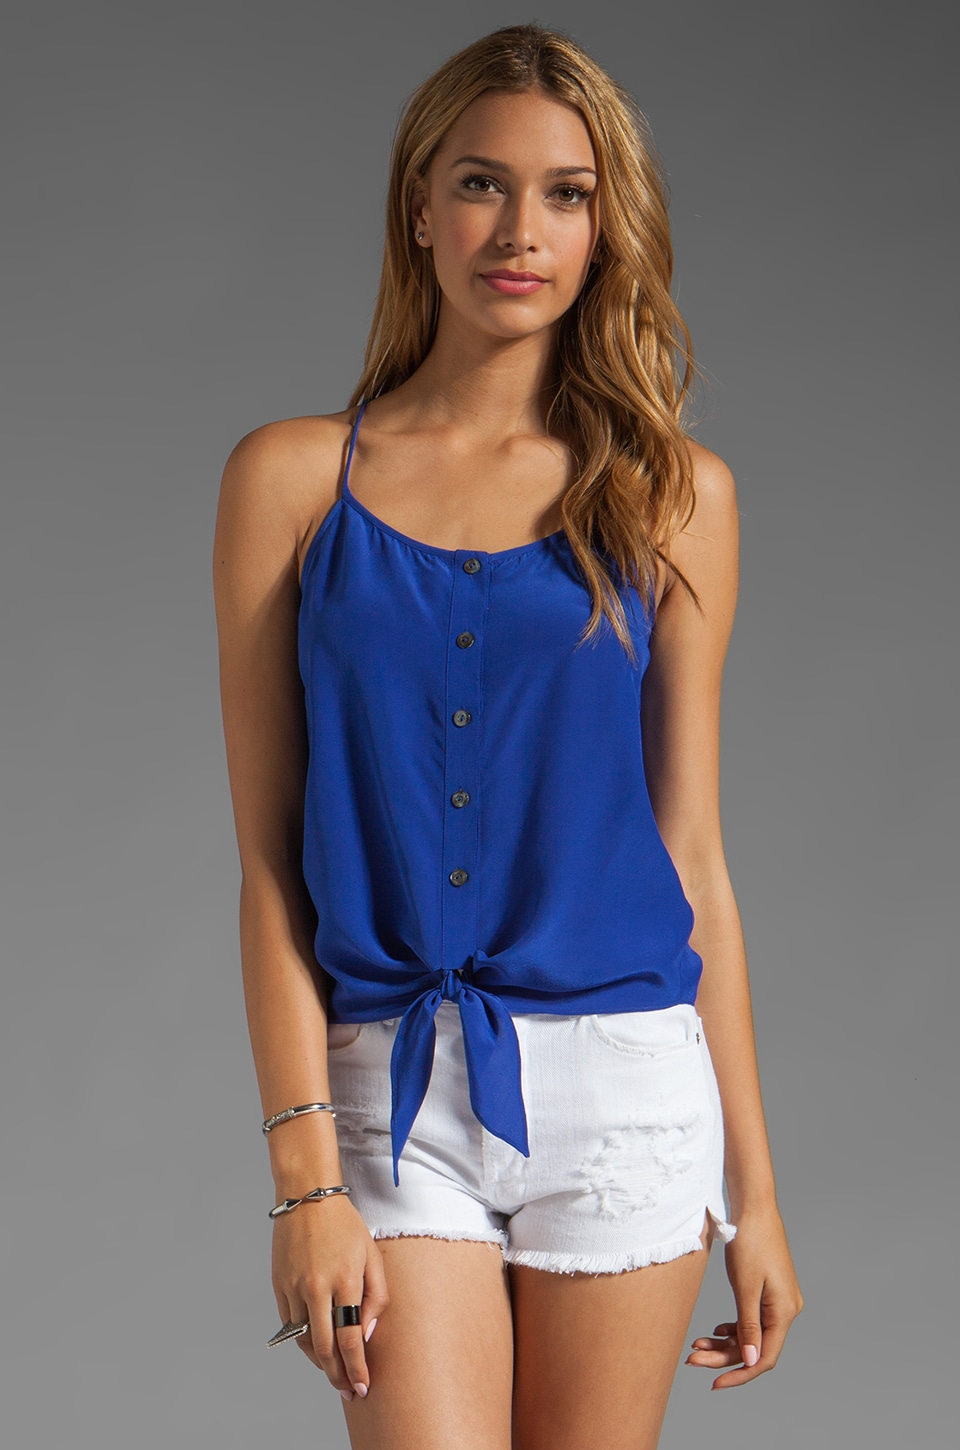 Trina Turk Helli Tank in Mirage Blue